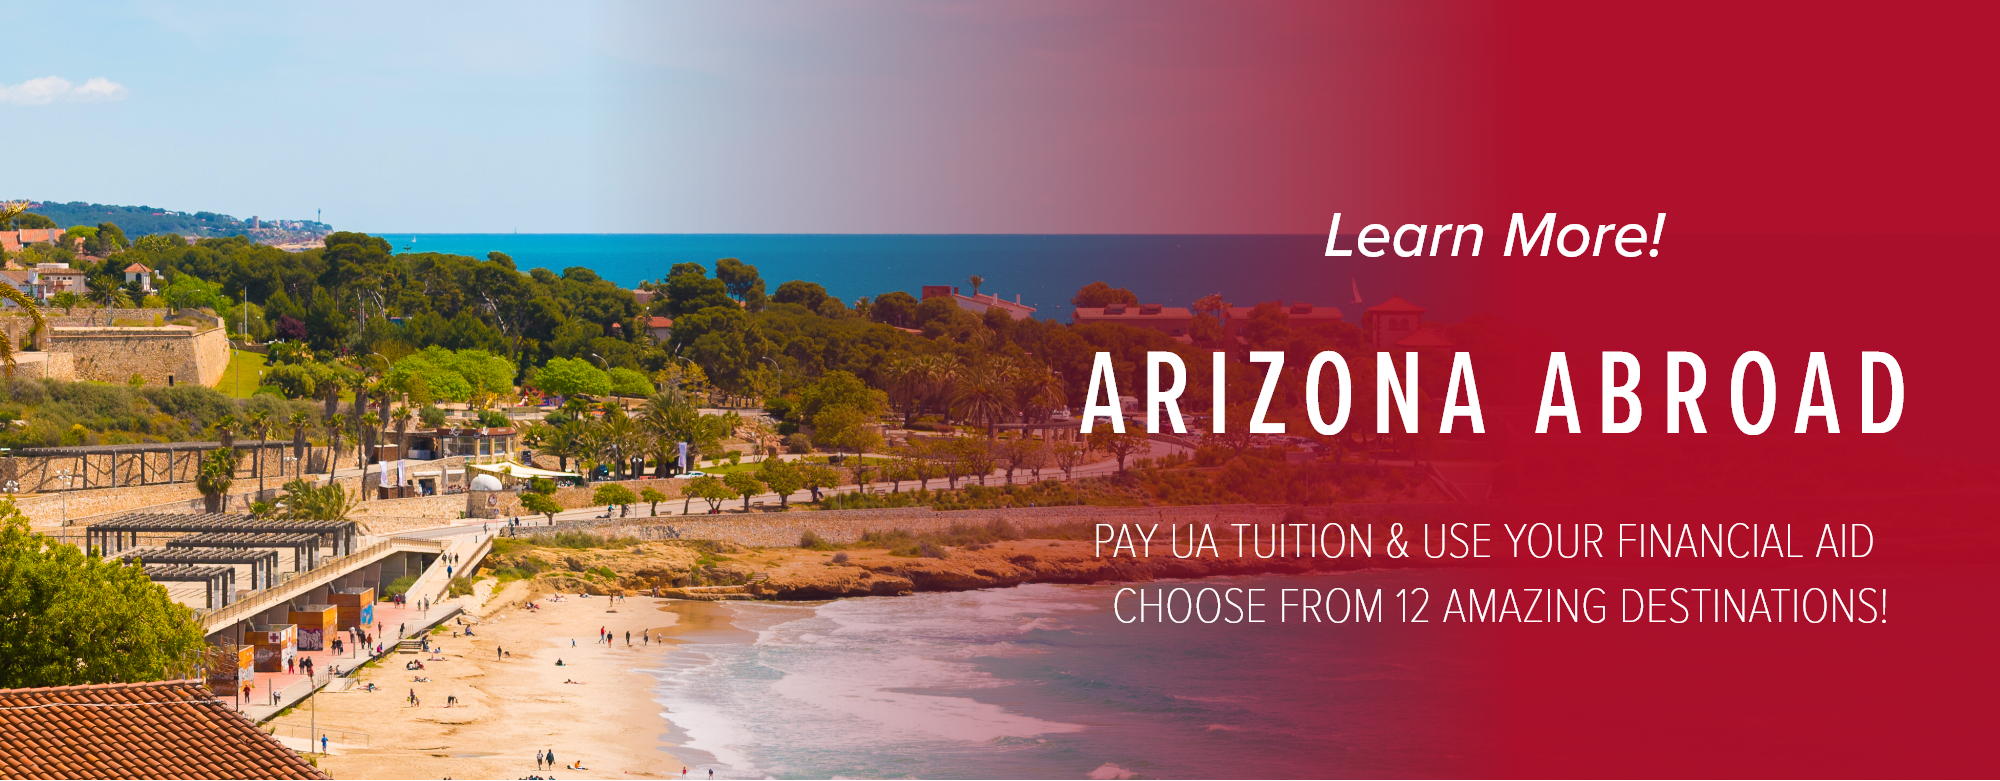 Learn More! Arizona Abroad. Pay UA tuition & use your financial aid. Choose from 12 amazing destinations!